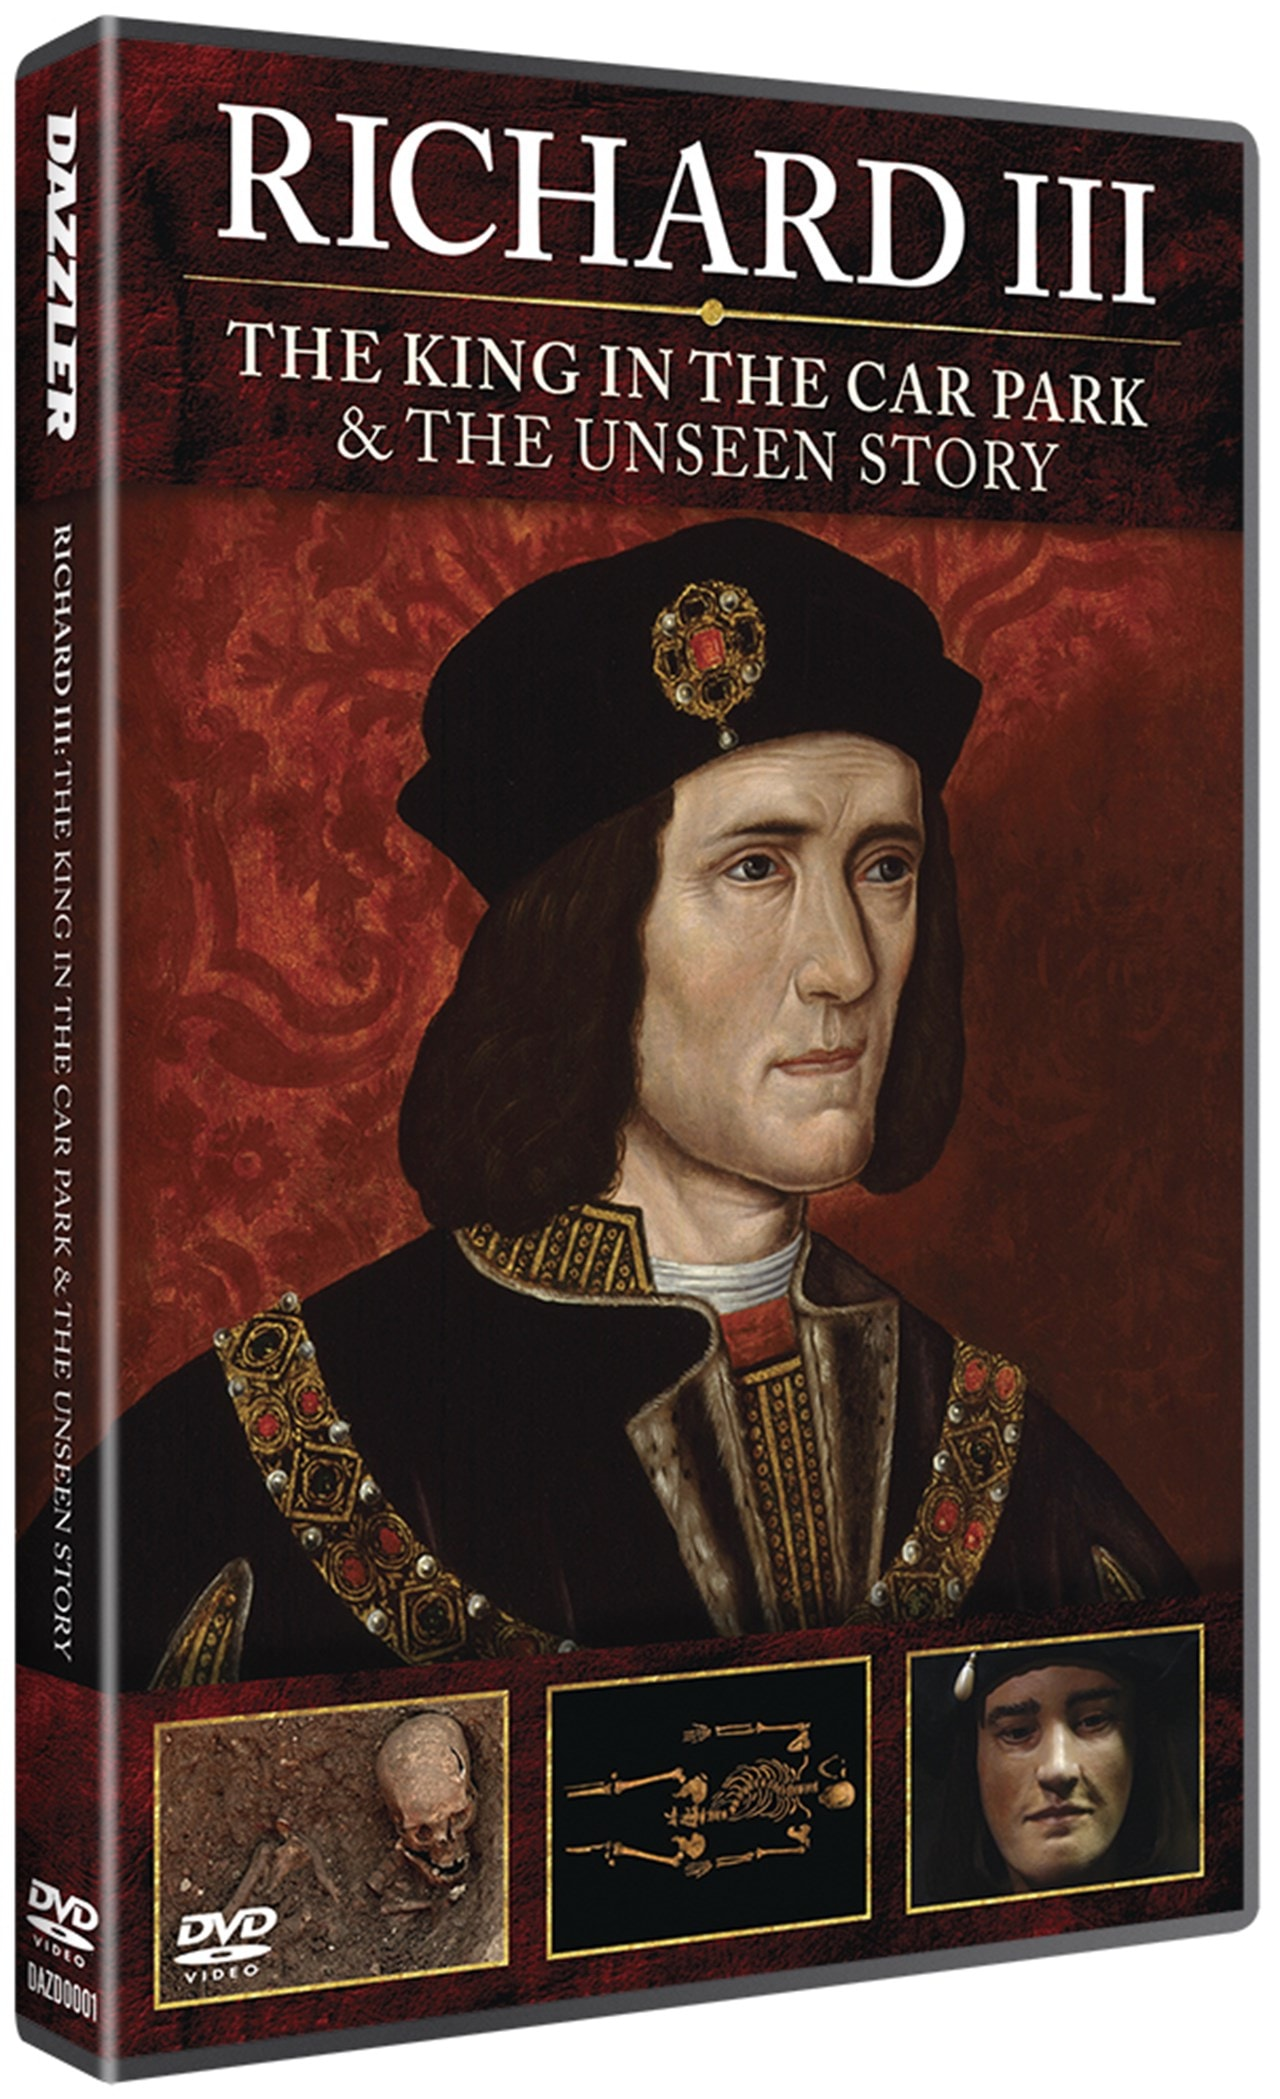 Richard III: The King in the Carpark/The Unseen Story - 2